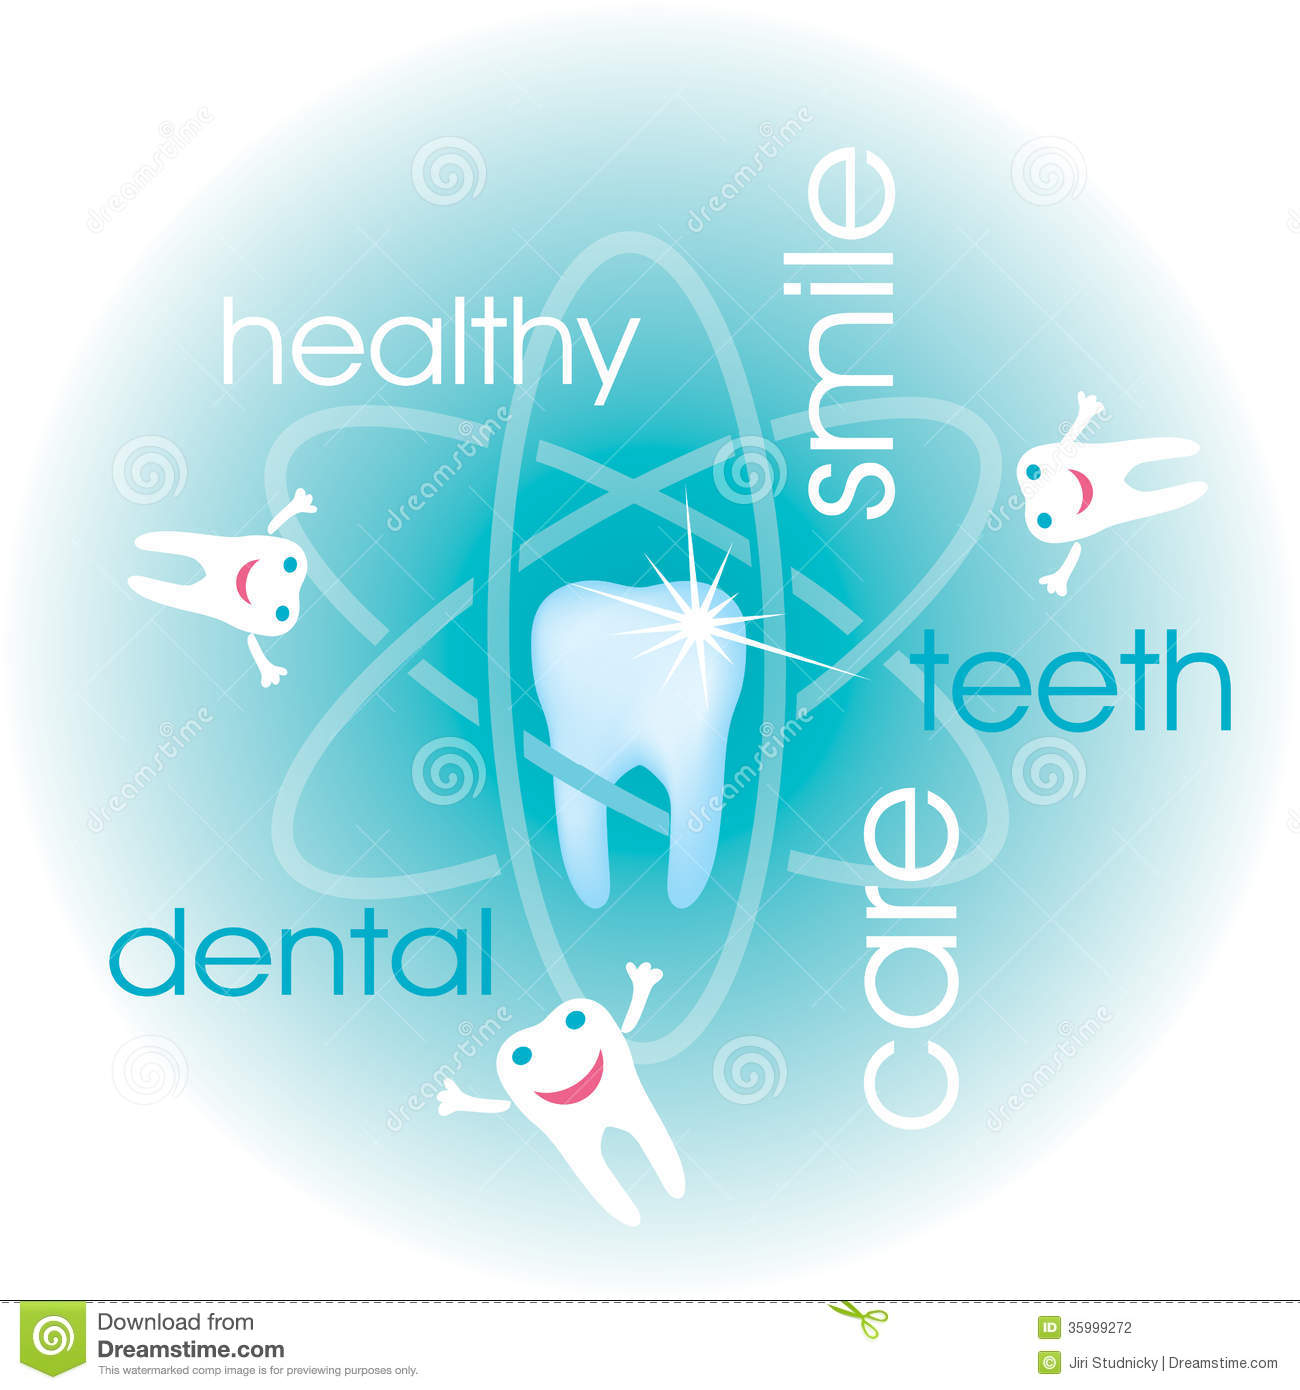 Dental care background stock vector. Image of protection ...